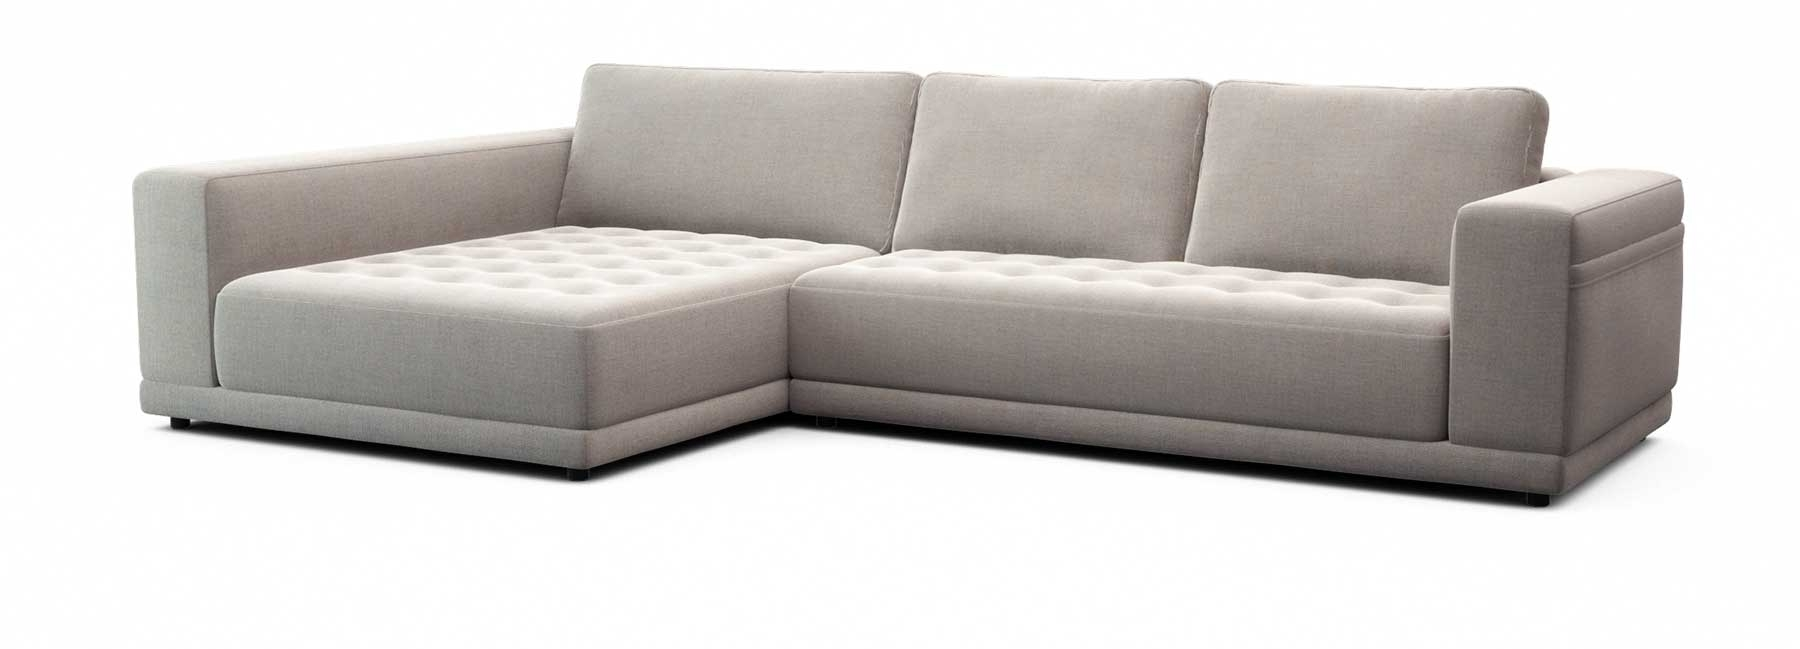 Felix Modular Sofa – Deep Seat Comfort | Tufted Seat | Lounge Pertaining To Norfolk Grey 6 Piece Sectionals (Image 8 of 25)